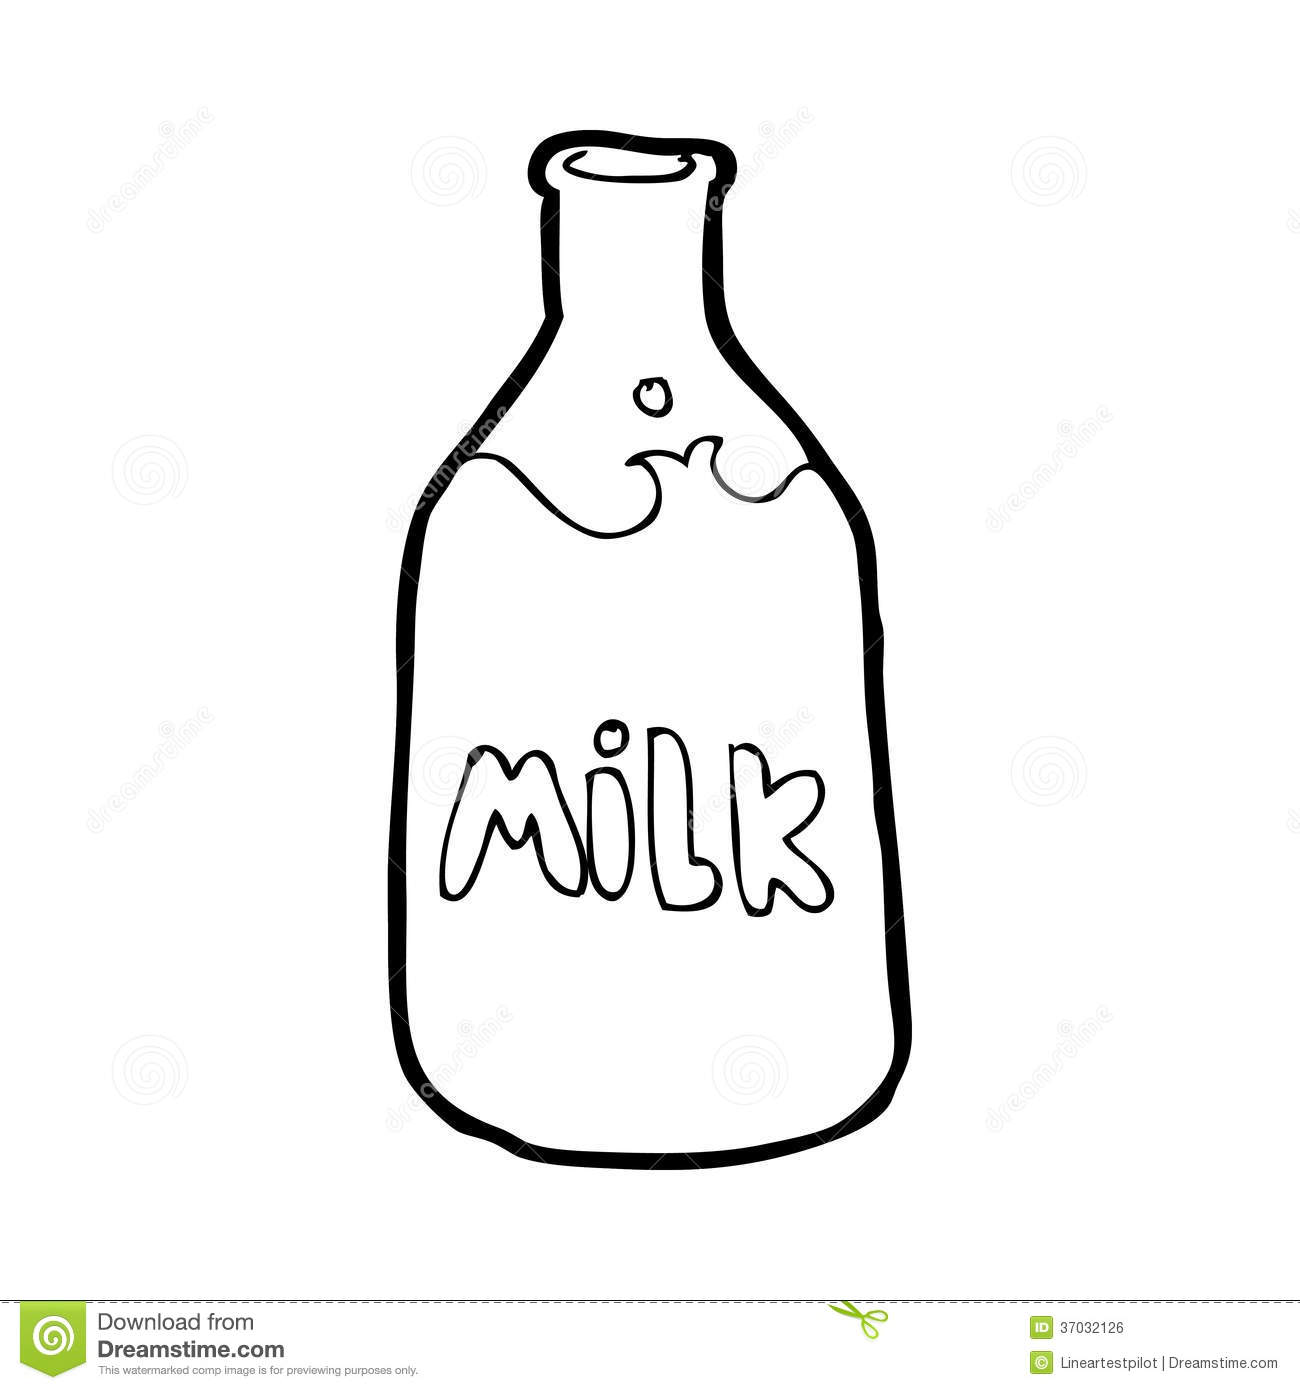 clipart of a glass of milk - photo #32